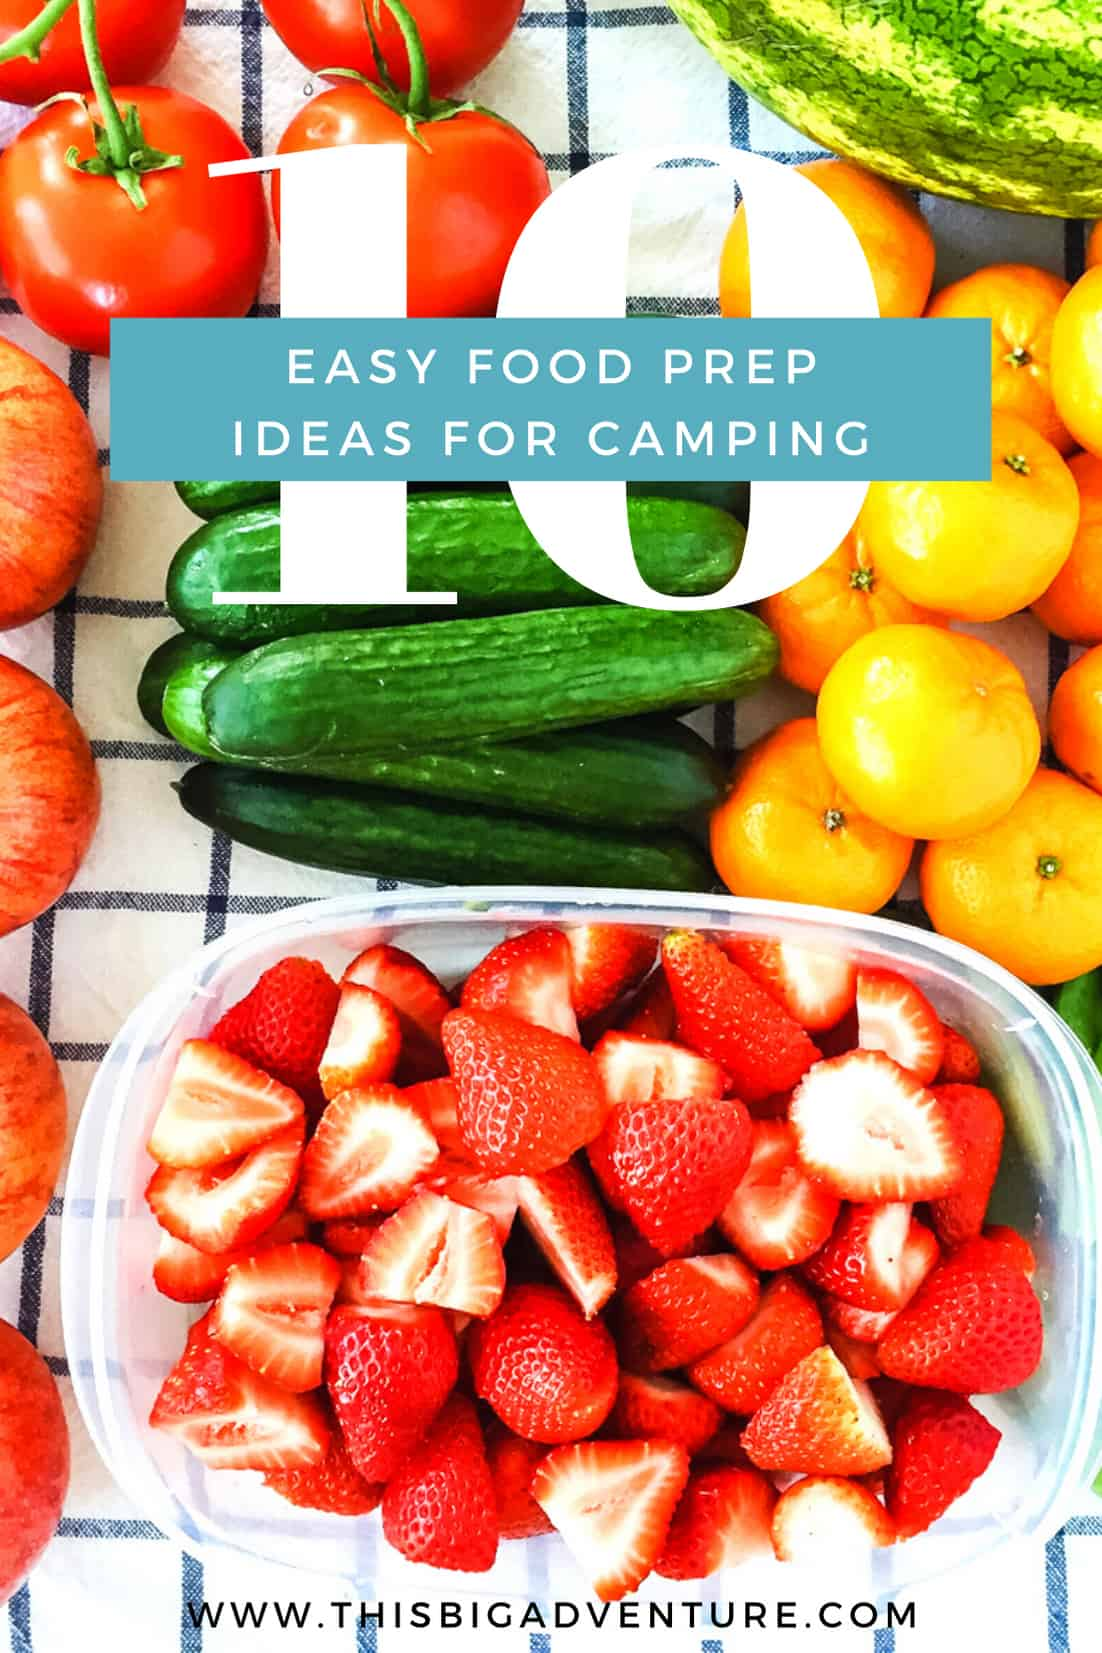 10 Easy Food Prep Tips for Camping